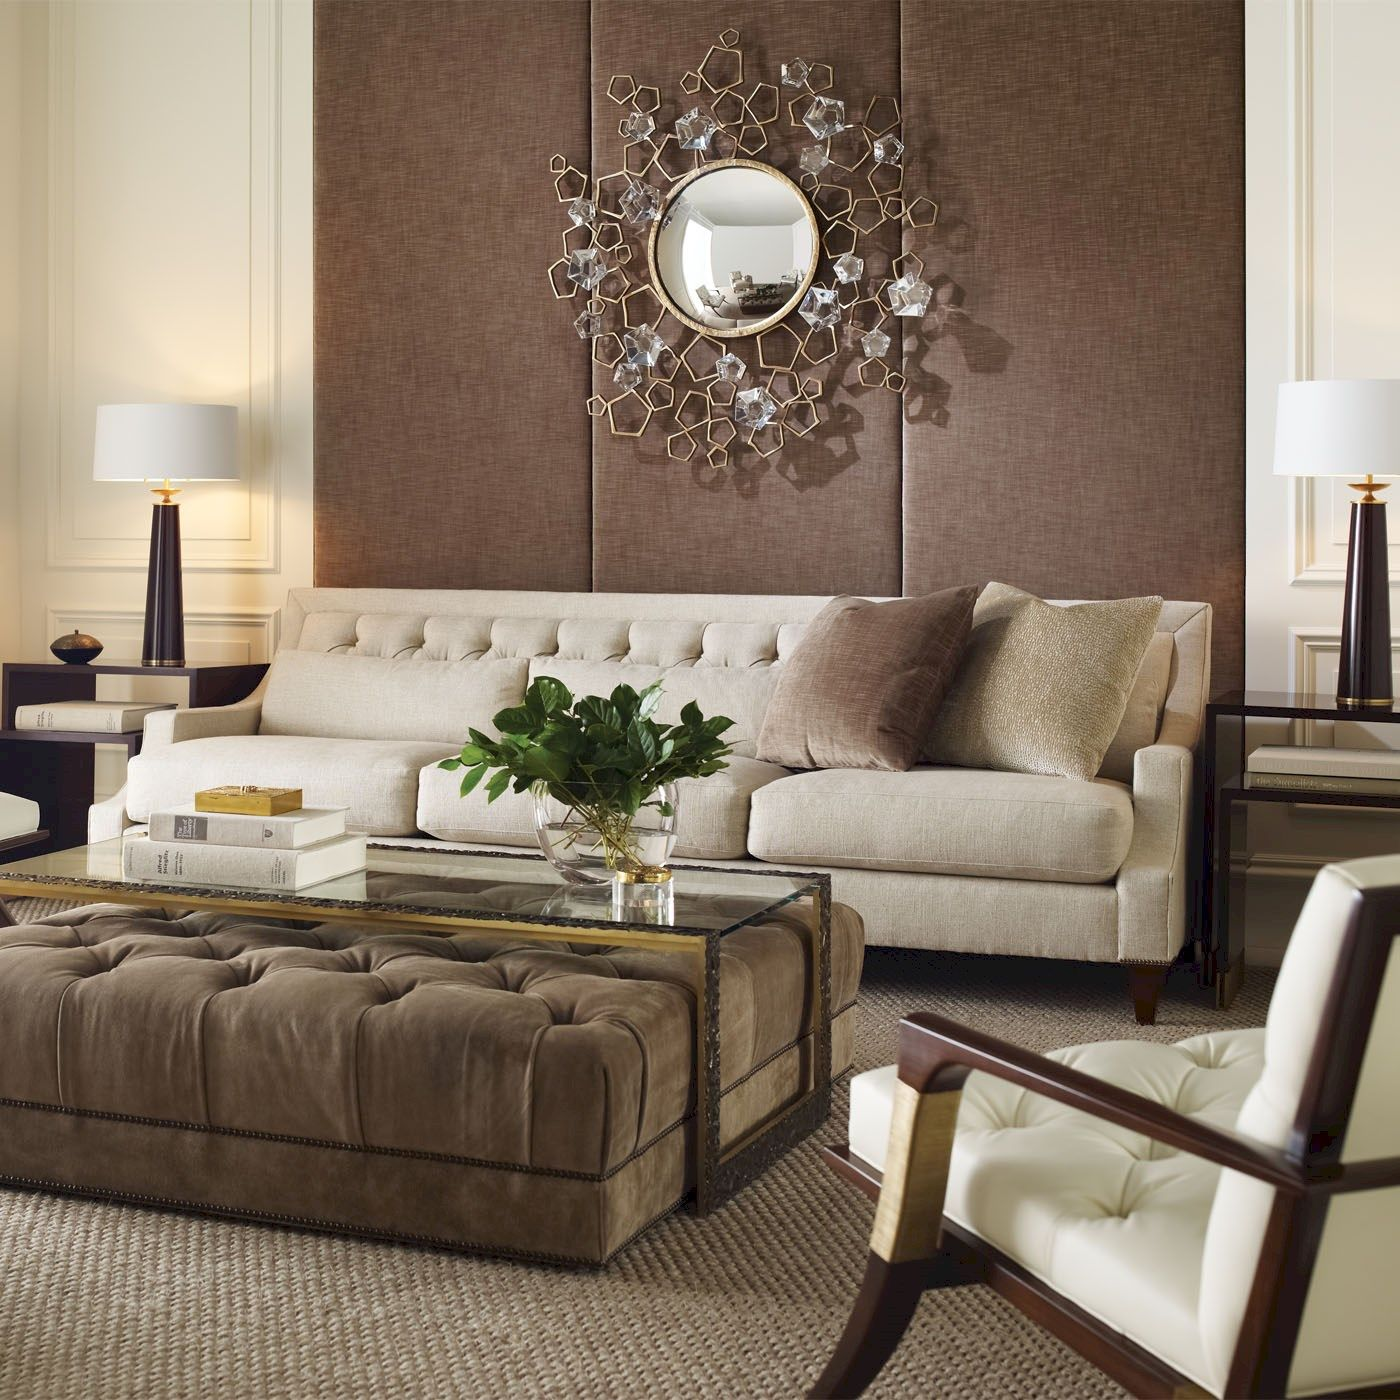 The Thomas Pheasant Collection Baker Furniture Suite 60 Michigan Design Center Baker Furniture Home Furnishings Living Room Inspiration